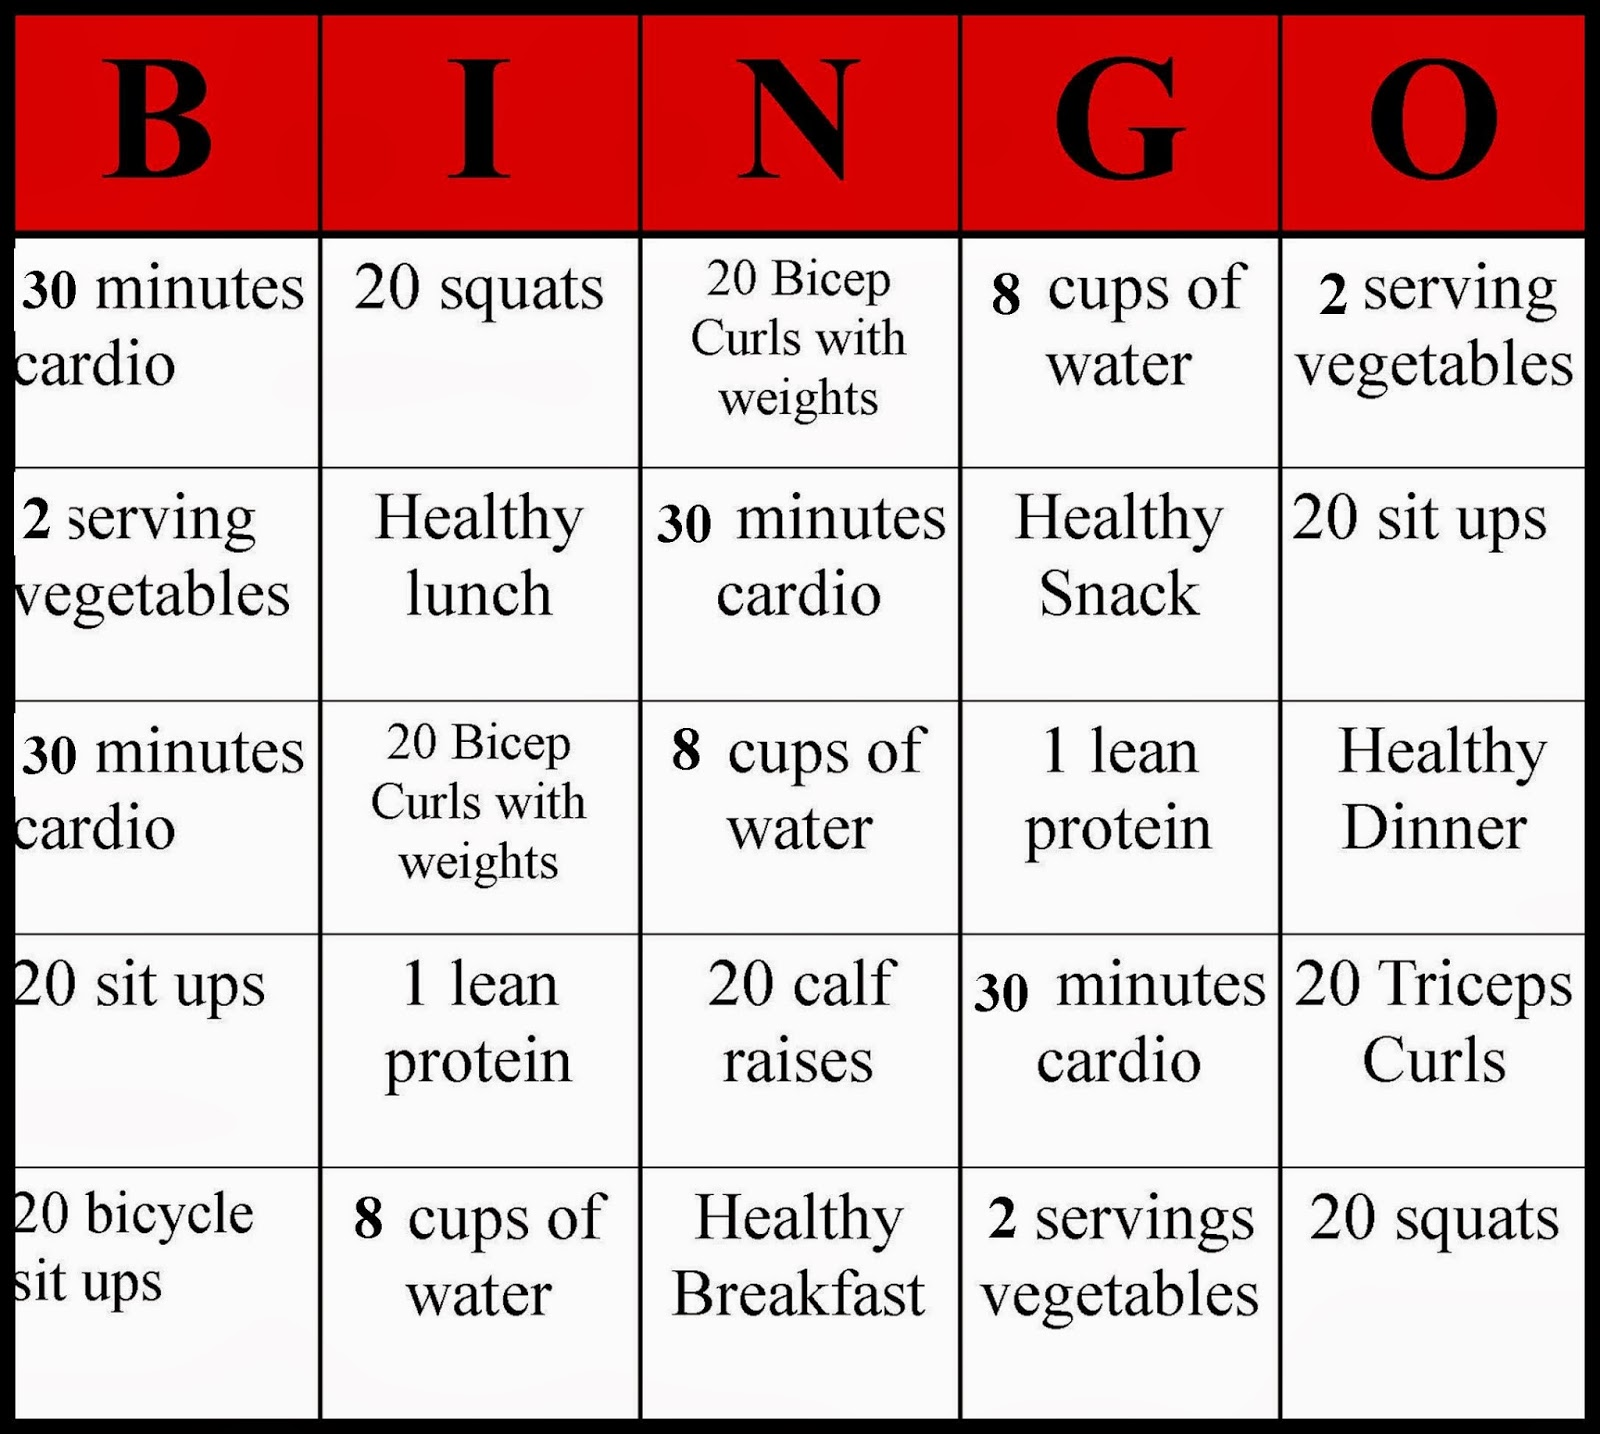 ... , fitness bingo, fitness, healthy, health, fun health, healthy living: muffinsvsmuffintop.blogspot.com/2013/10/weekly-workout-and...